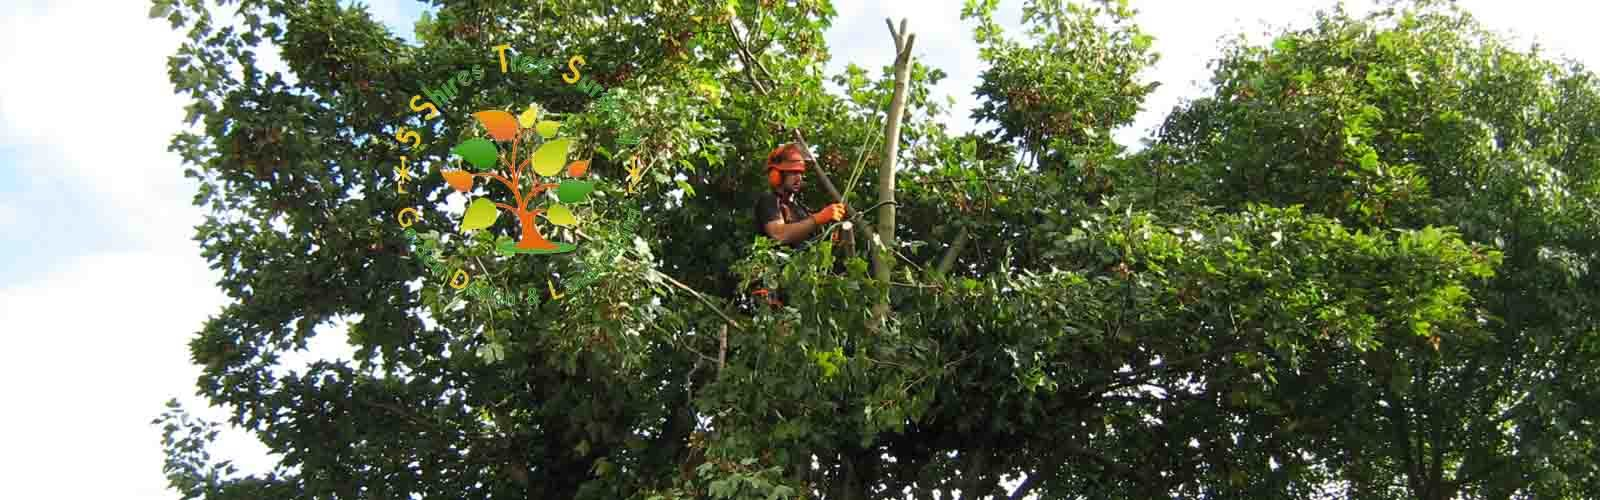 Tree services worcestshire